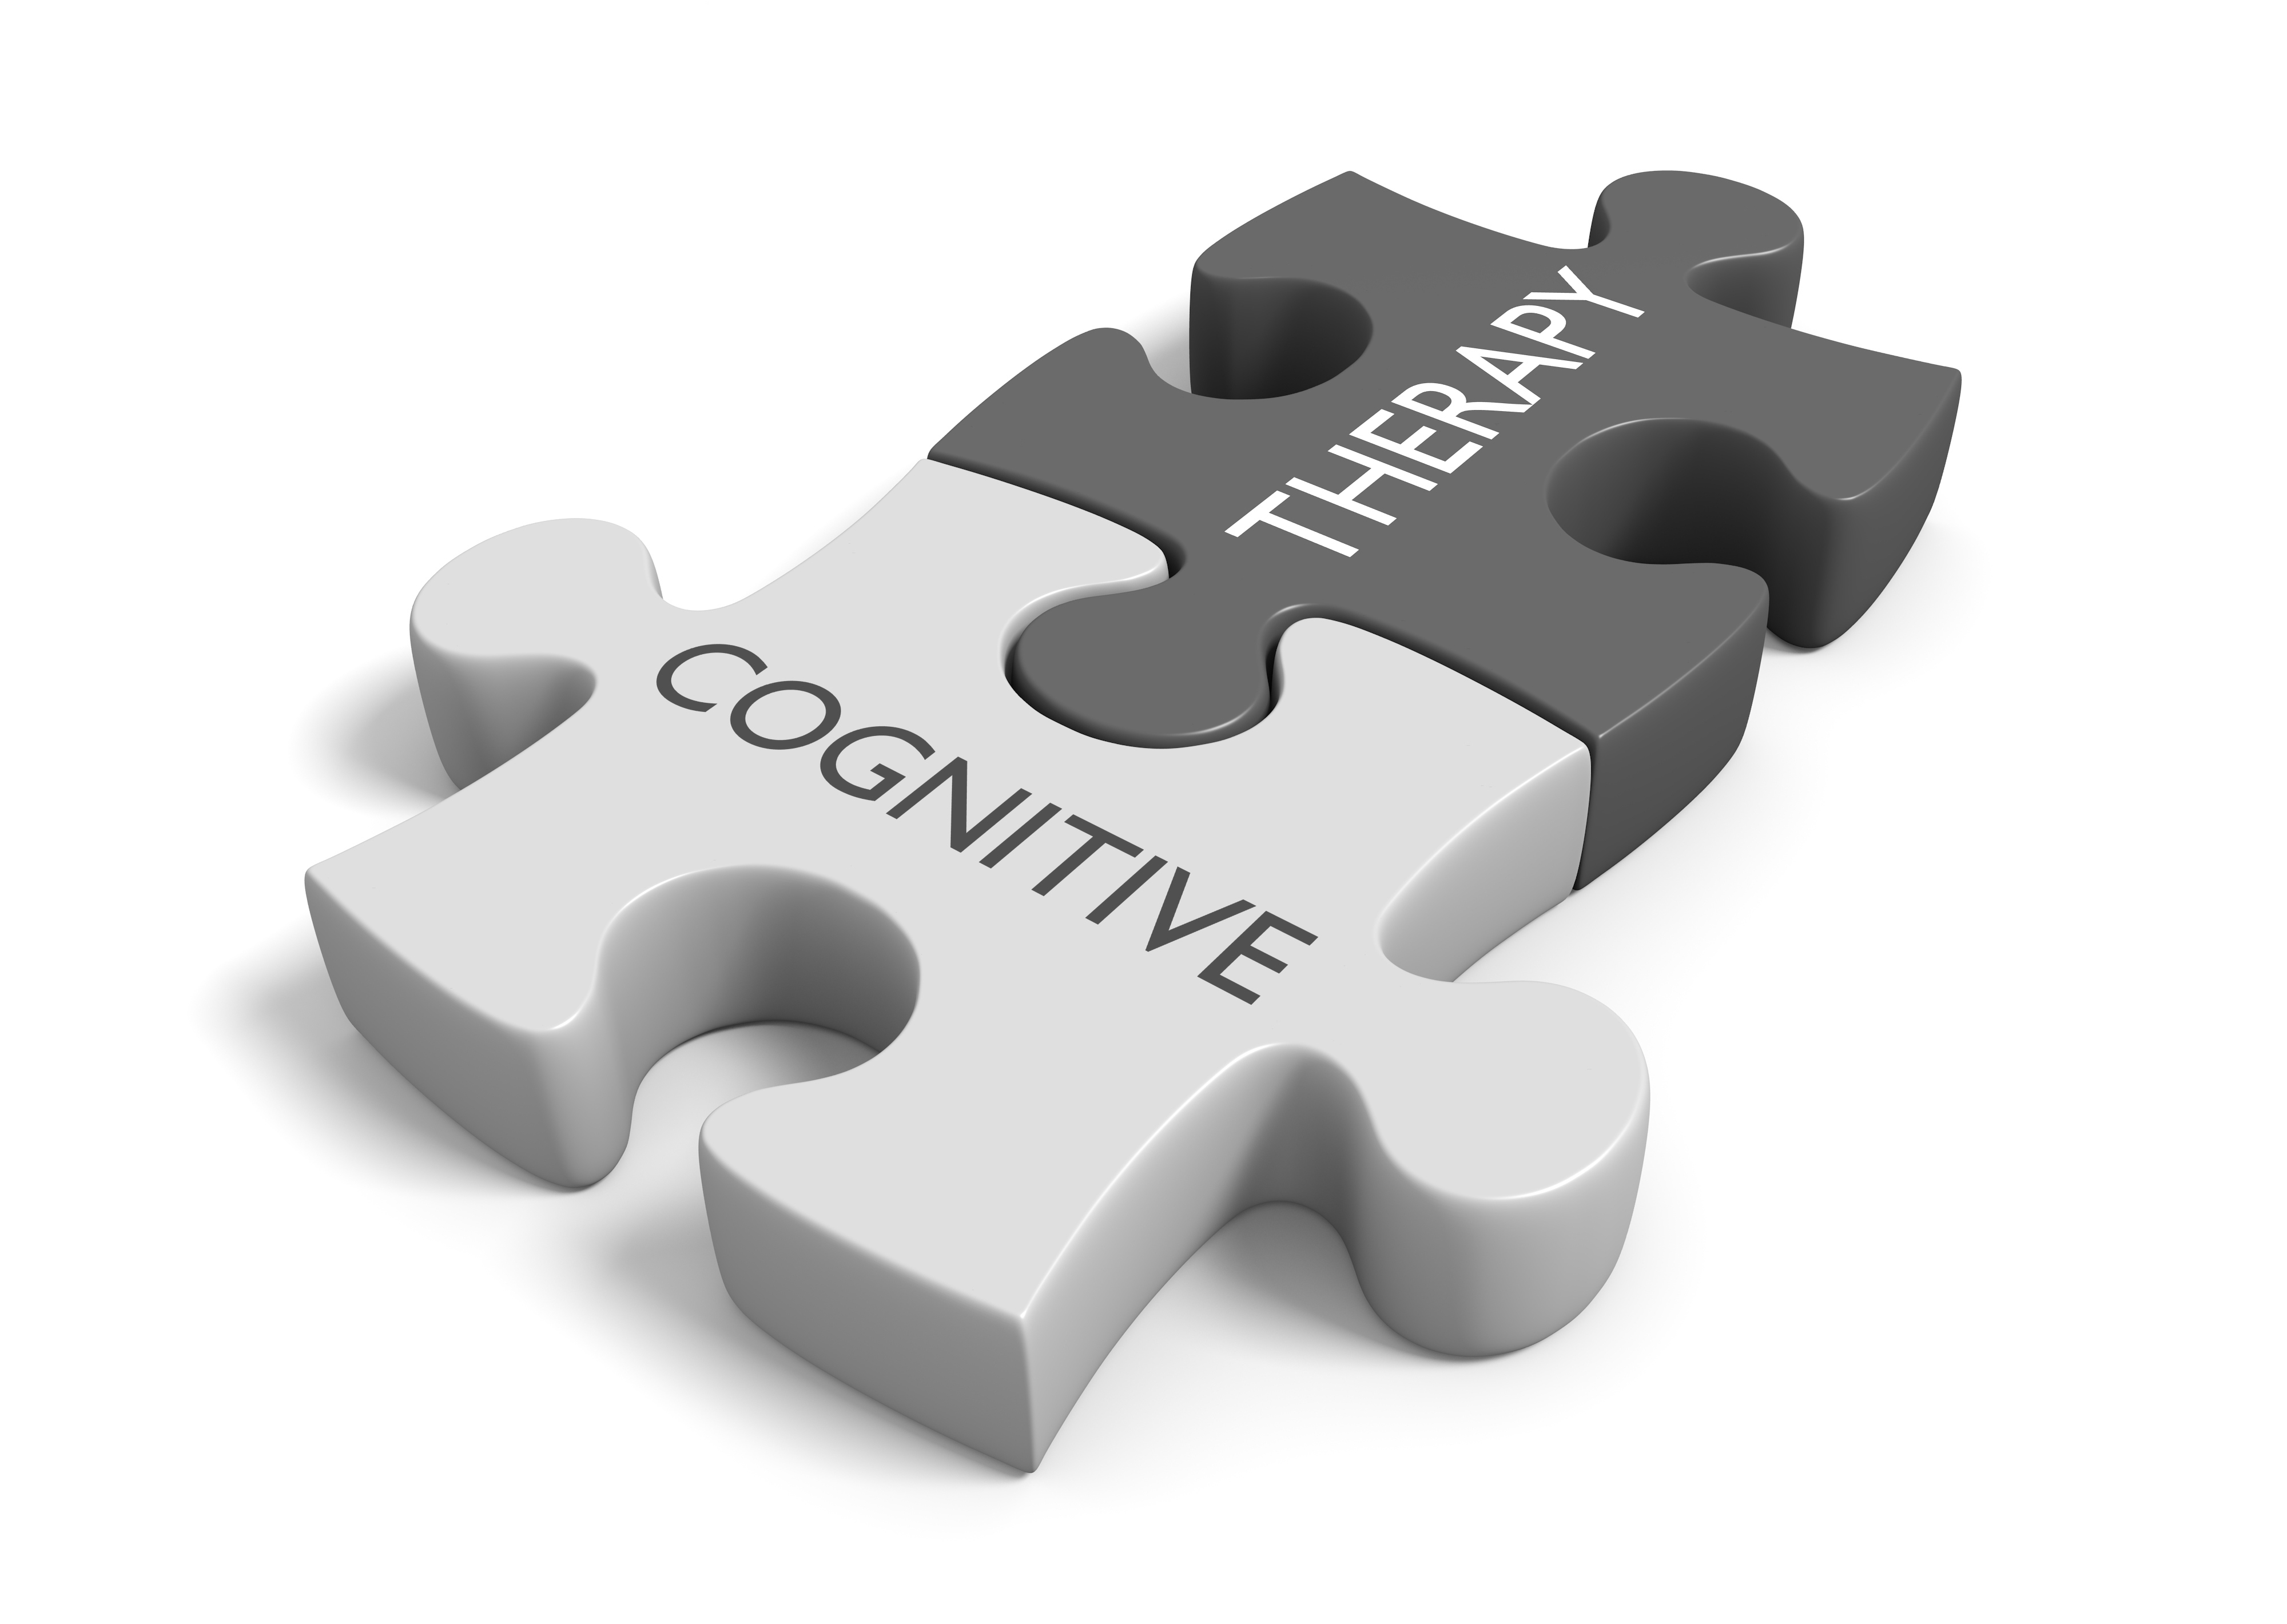 cognitive therapy A cognitive-behavioral therapy that teaches skills and techniques to manage stress and reduce anxiety present-centered therapy (pct) focuses on current life problems that are related to ptsd interpersonal psychotherapy (ipt.